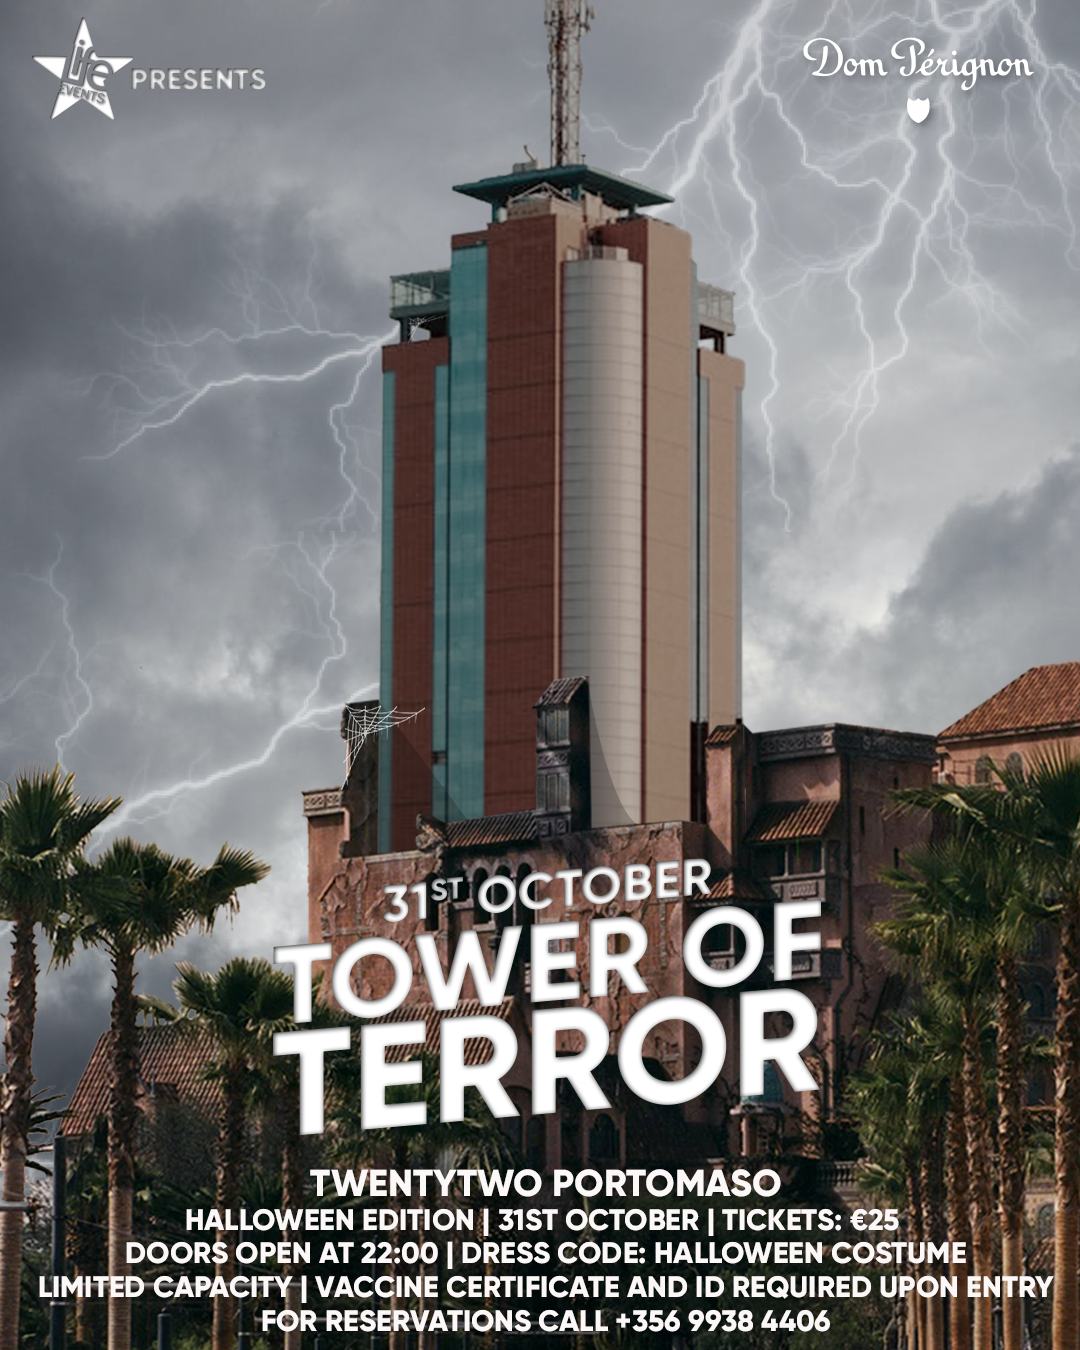 Tower of Terror by Life Events poster